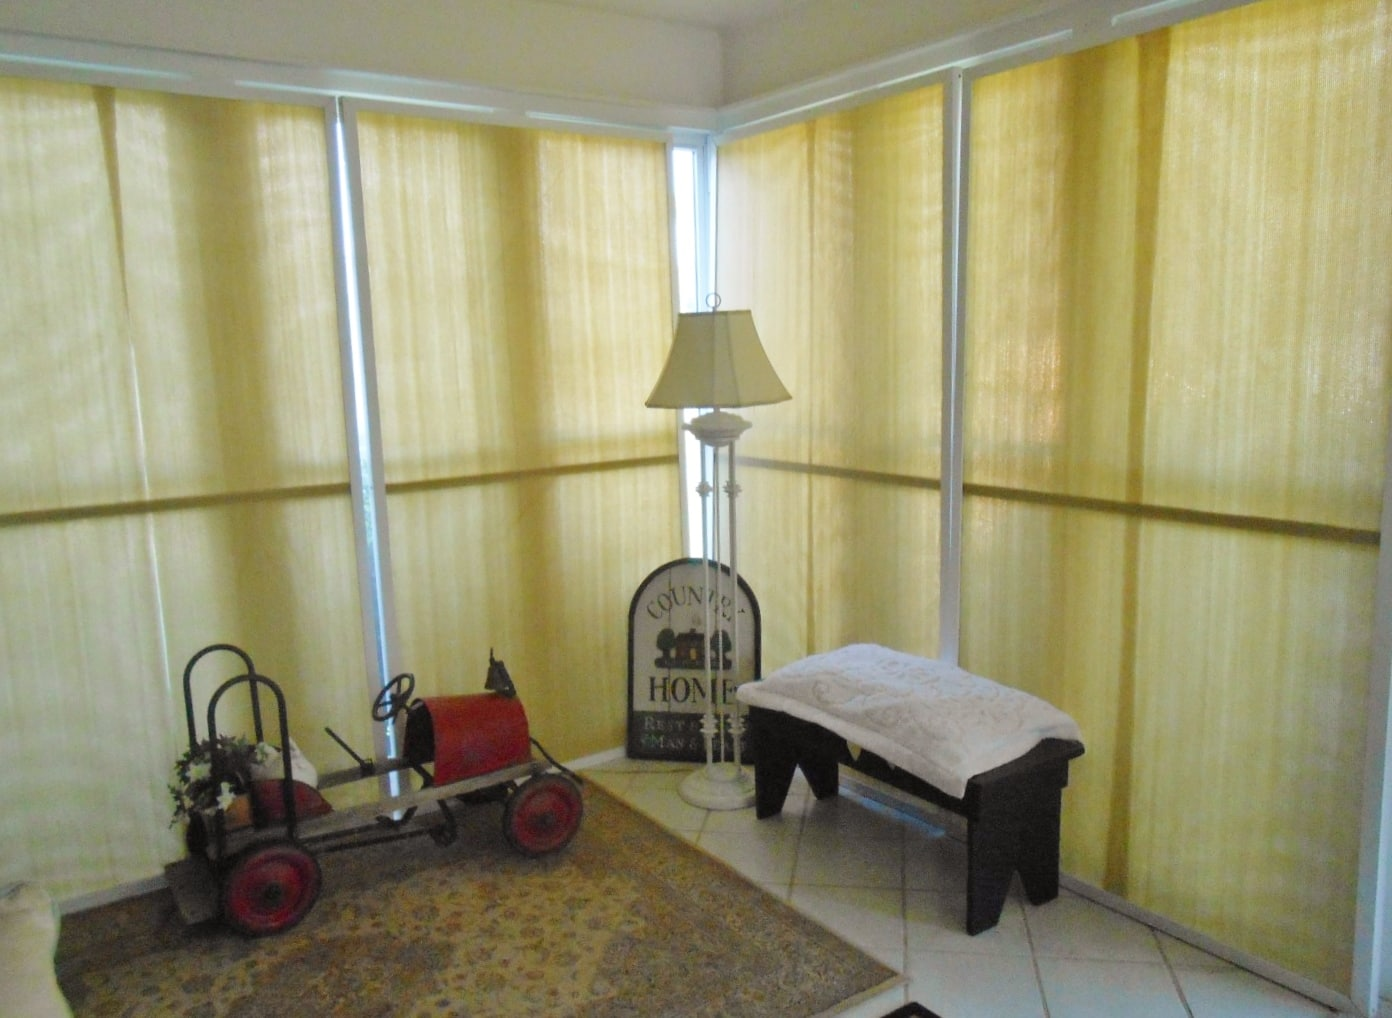 DIY Sunroom Window Treatments - DIY Inspired